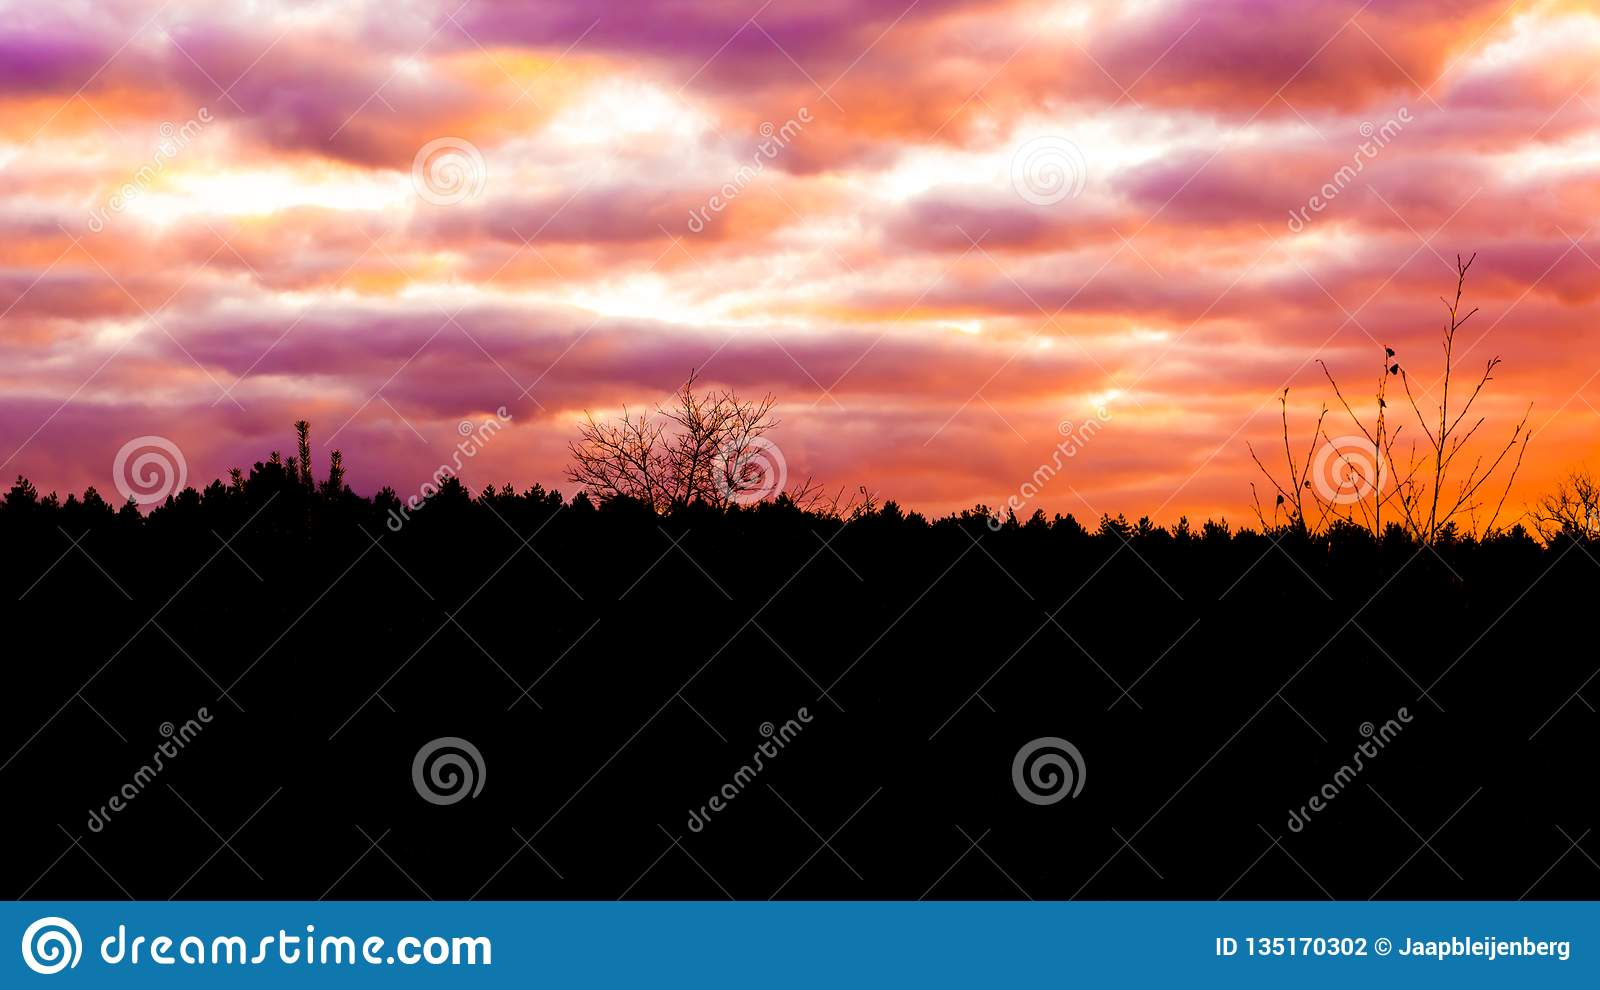 Moorland landscape at sunset with nacreous clouds, a rare winter weather effect